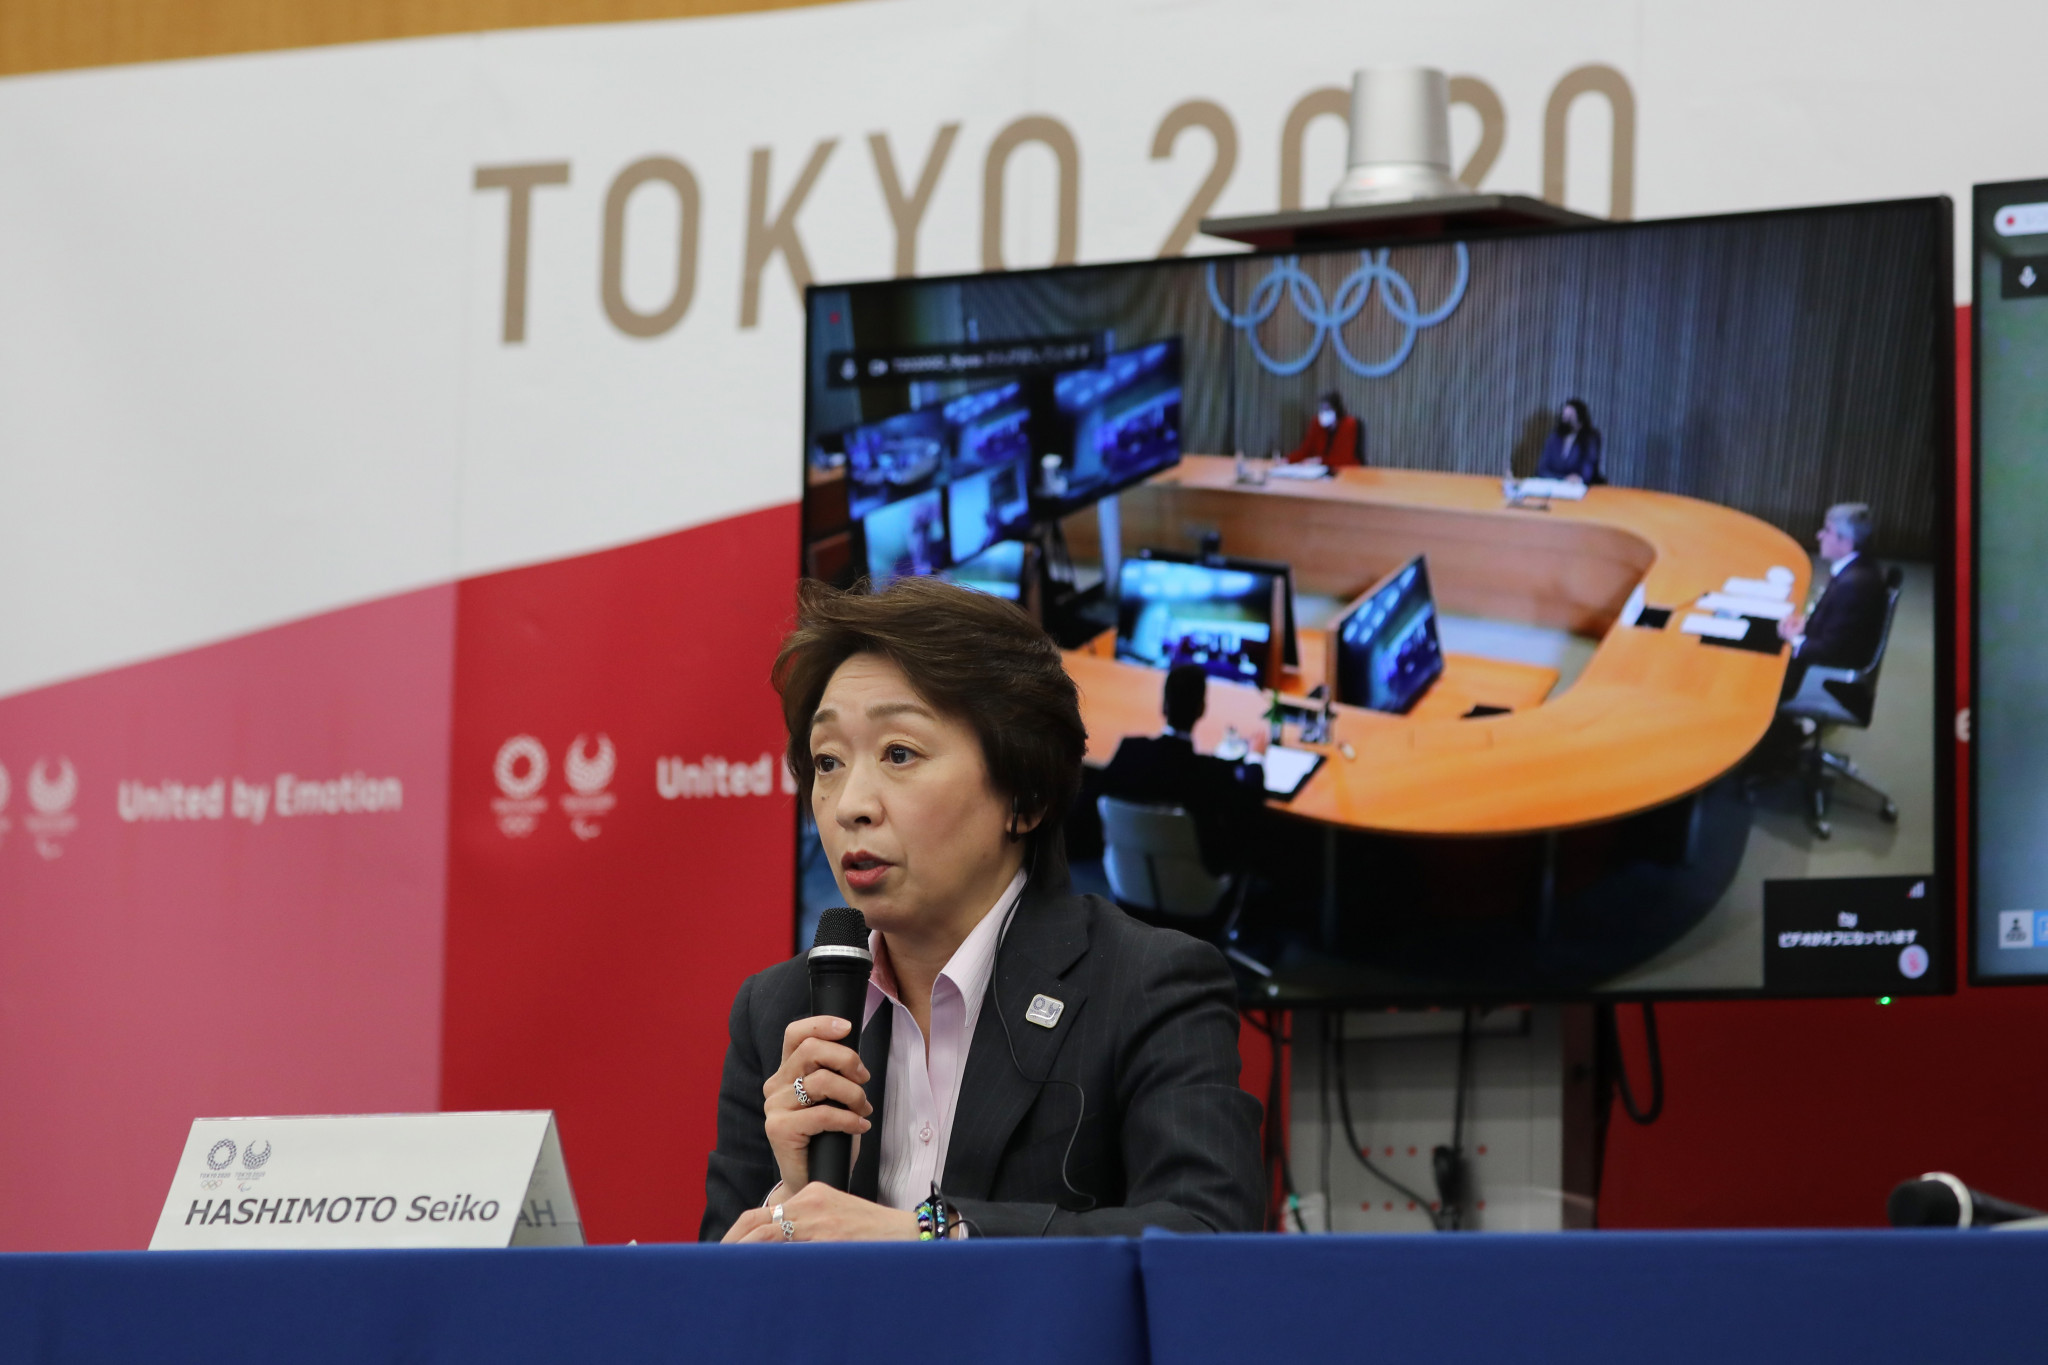 Tokyo 2020 appoints 12 women to Executive Board in response to sexism row